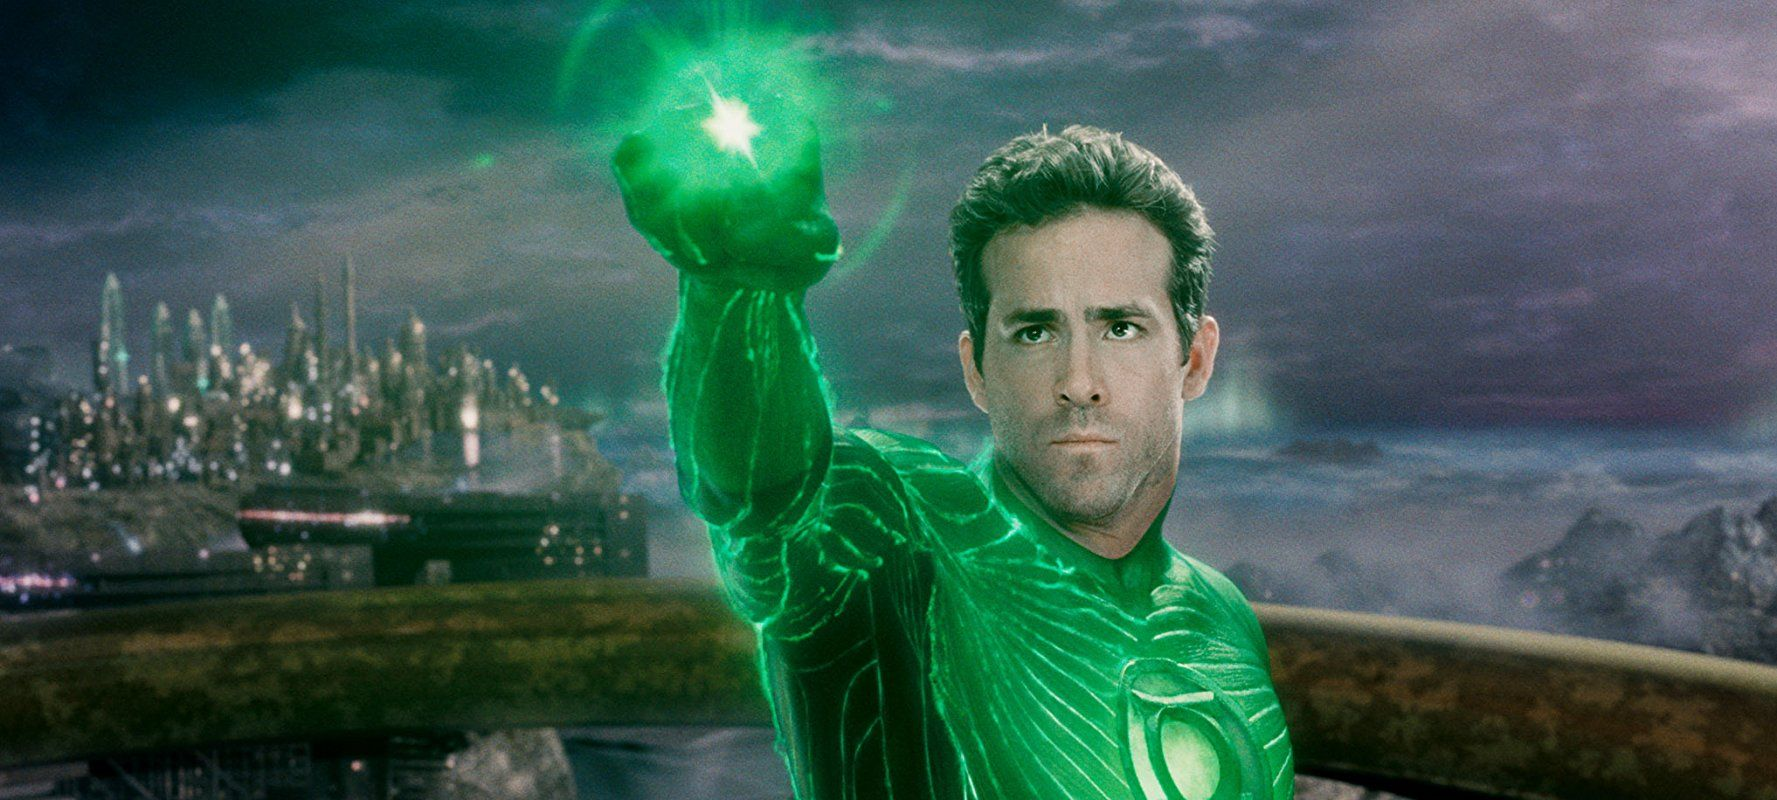 Ryan Reynolds as Green Lantern (2011)